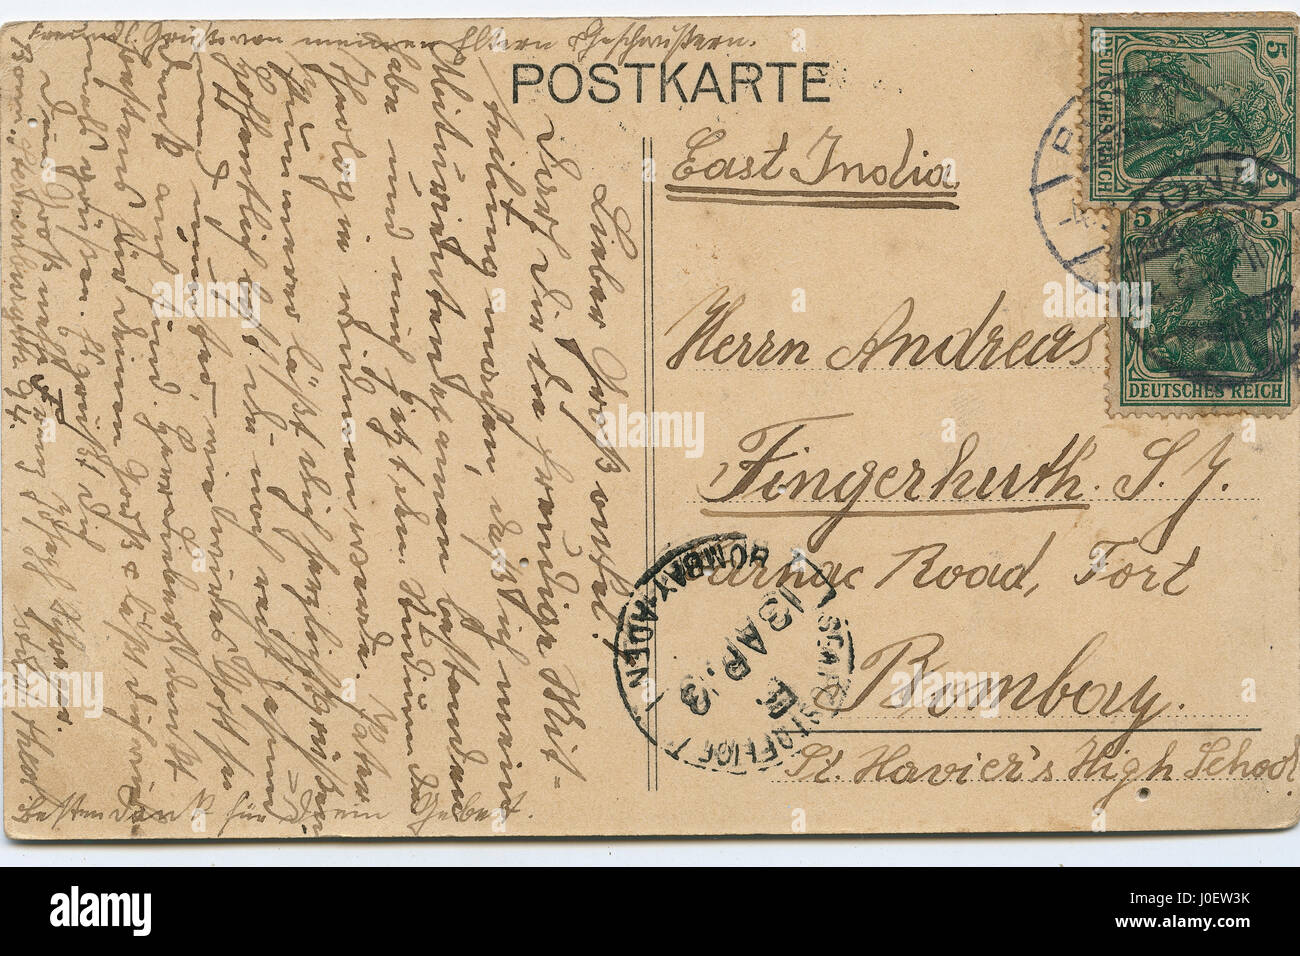 Post karte germany, postage stamps, india, asia - Stock Image